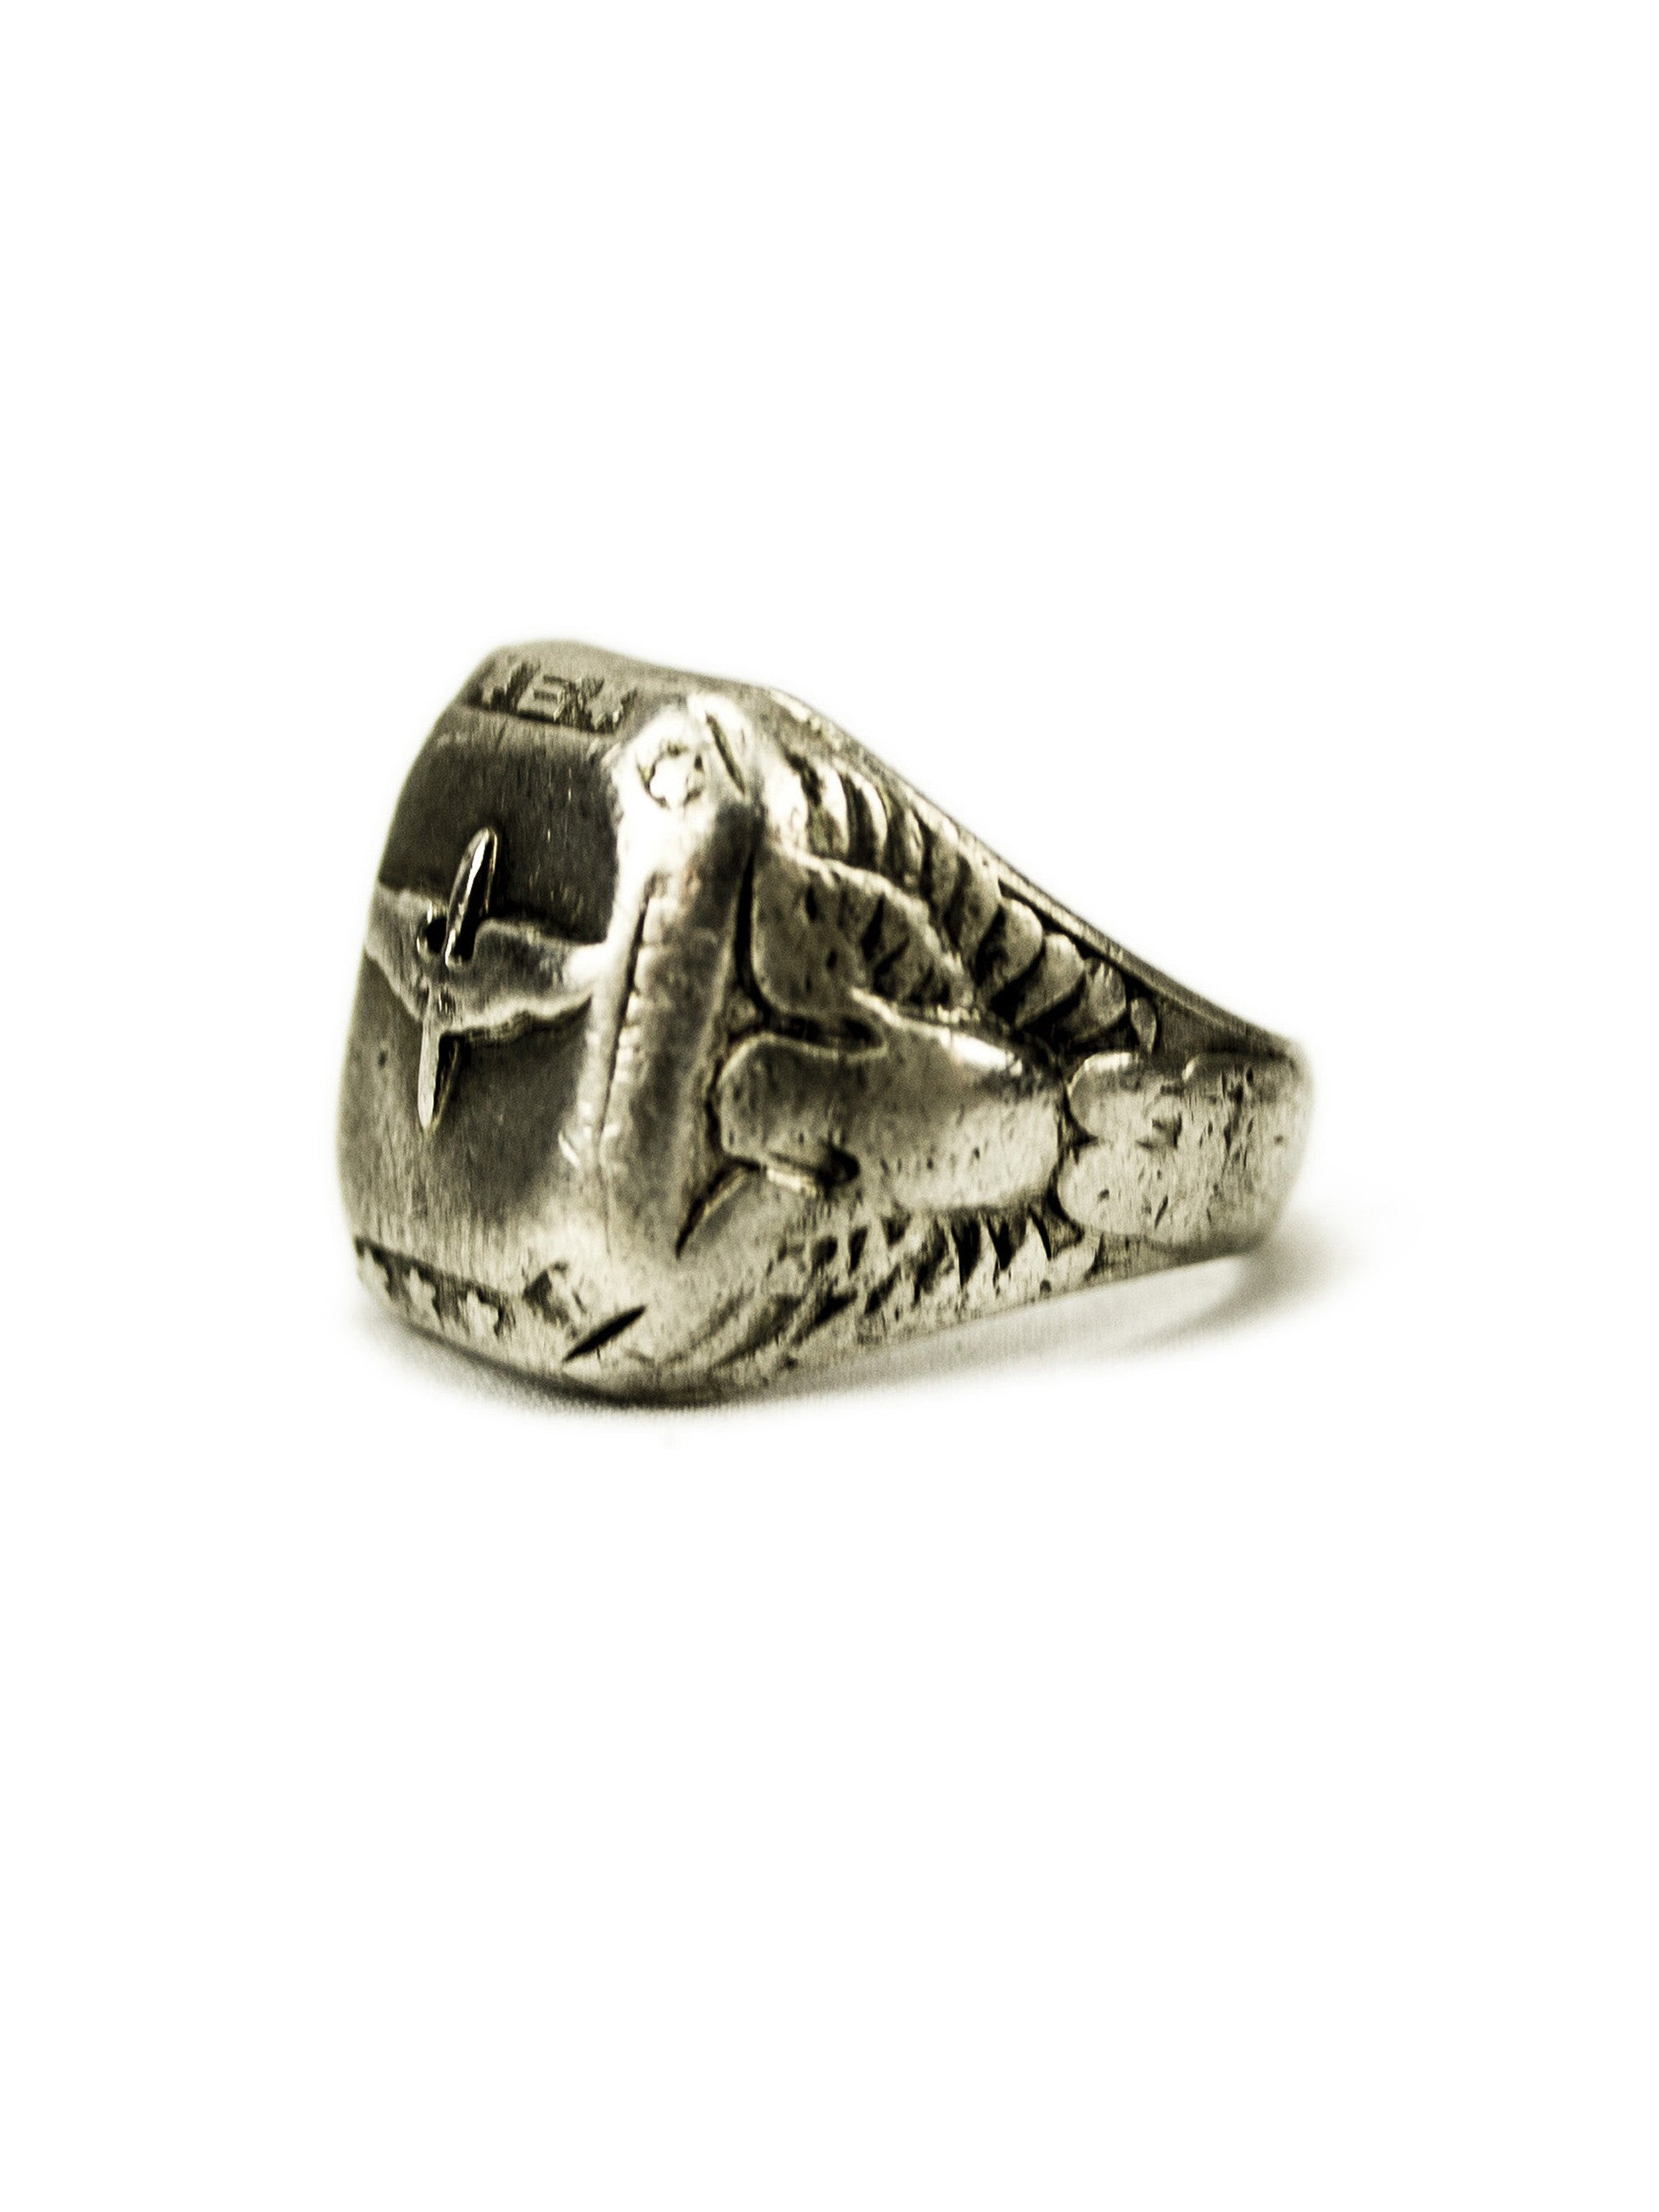 Vintage WWII Sterling Silver Caduceus Ring